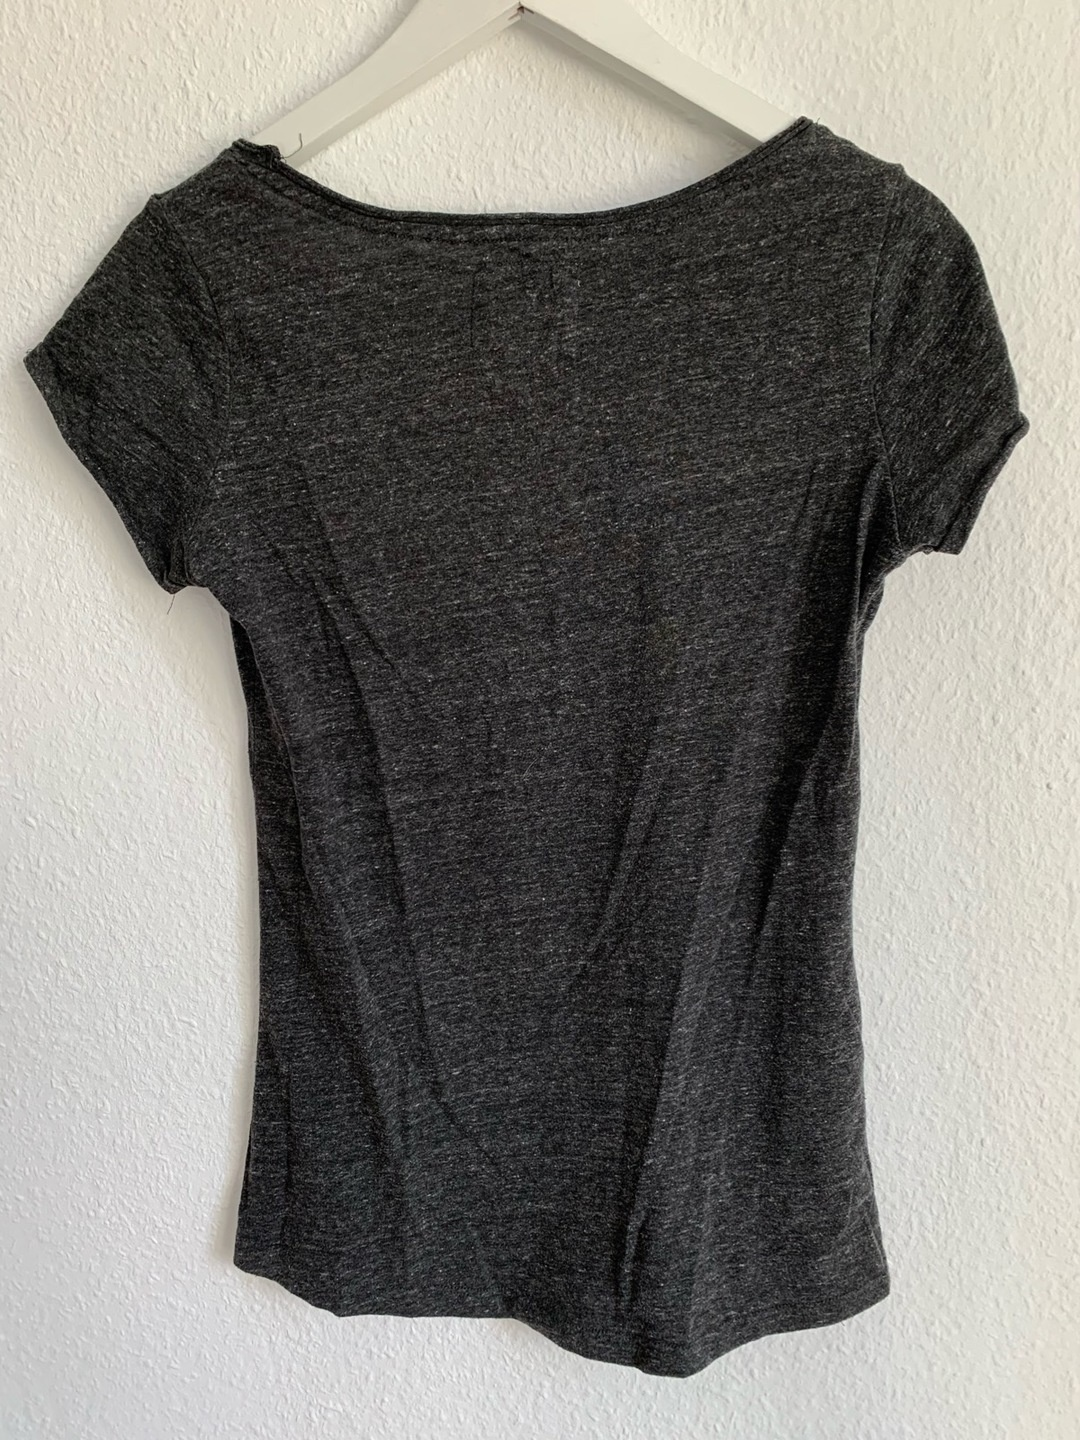 Women's tops & t-shirts - H&M photo 2